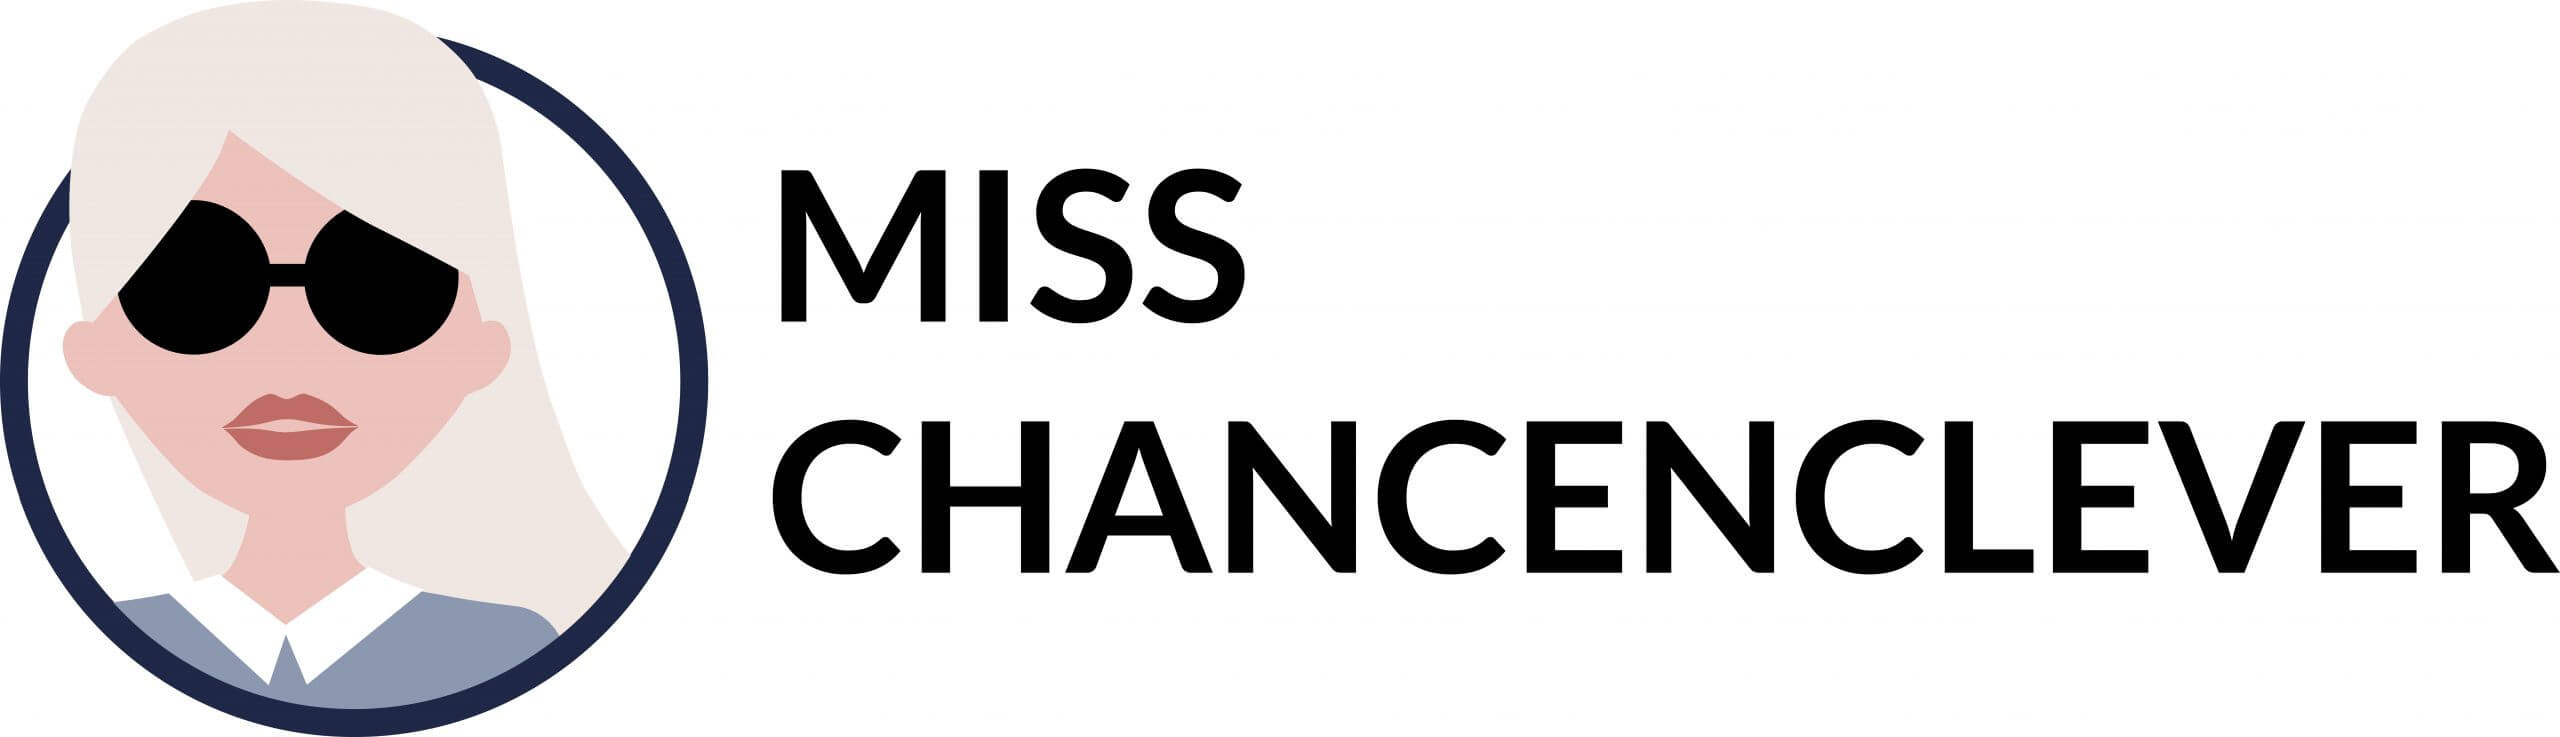 Miss Chancenclever